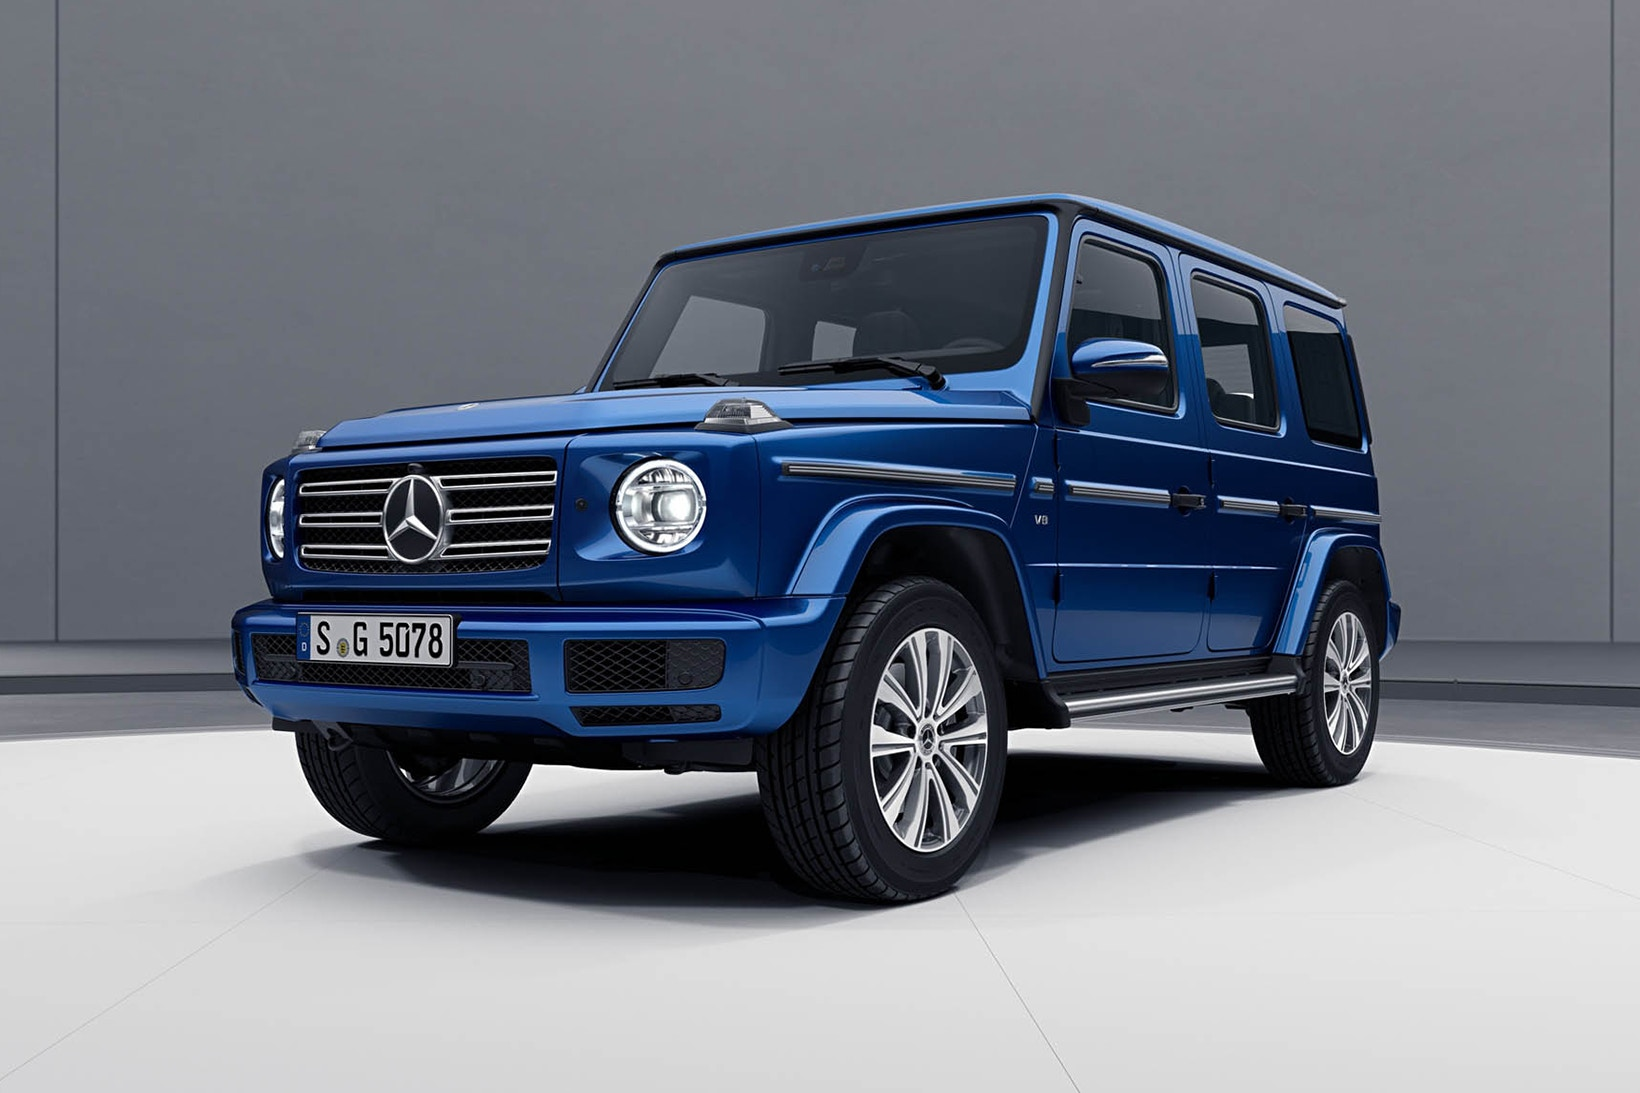 mercedes-benz-g-class-stainless-steel-1.jpg